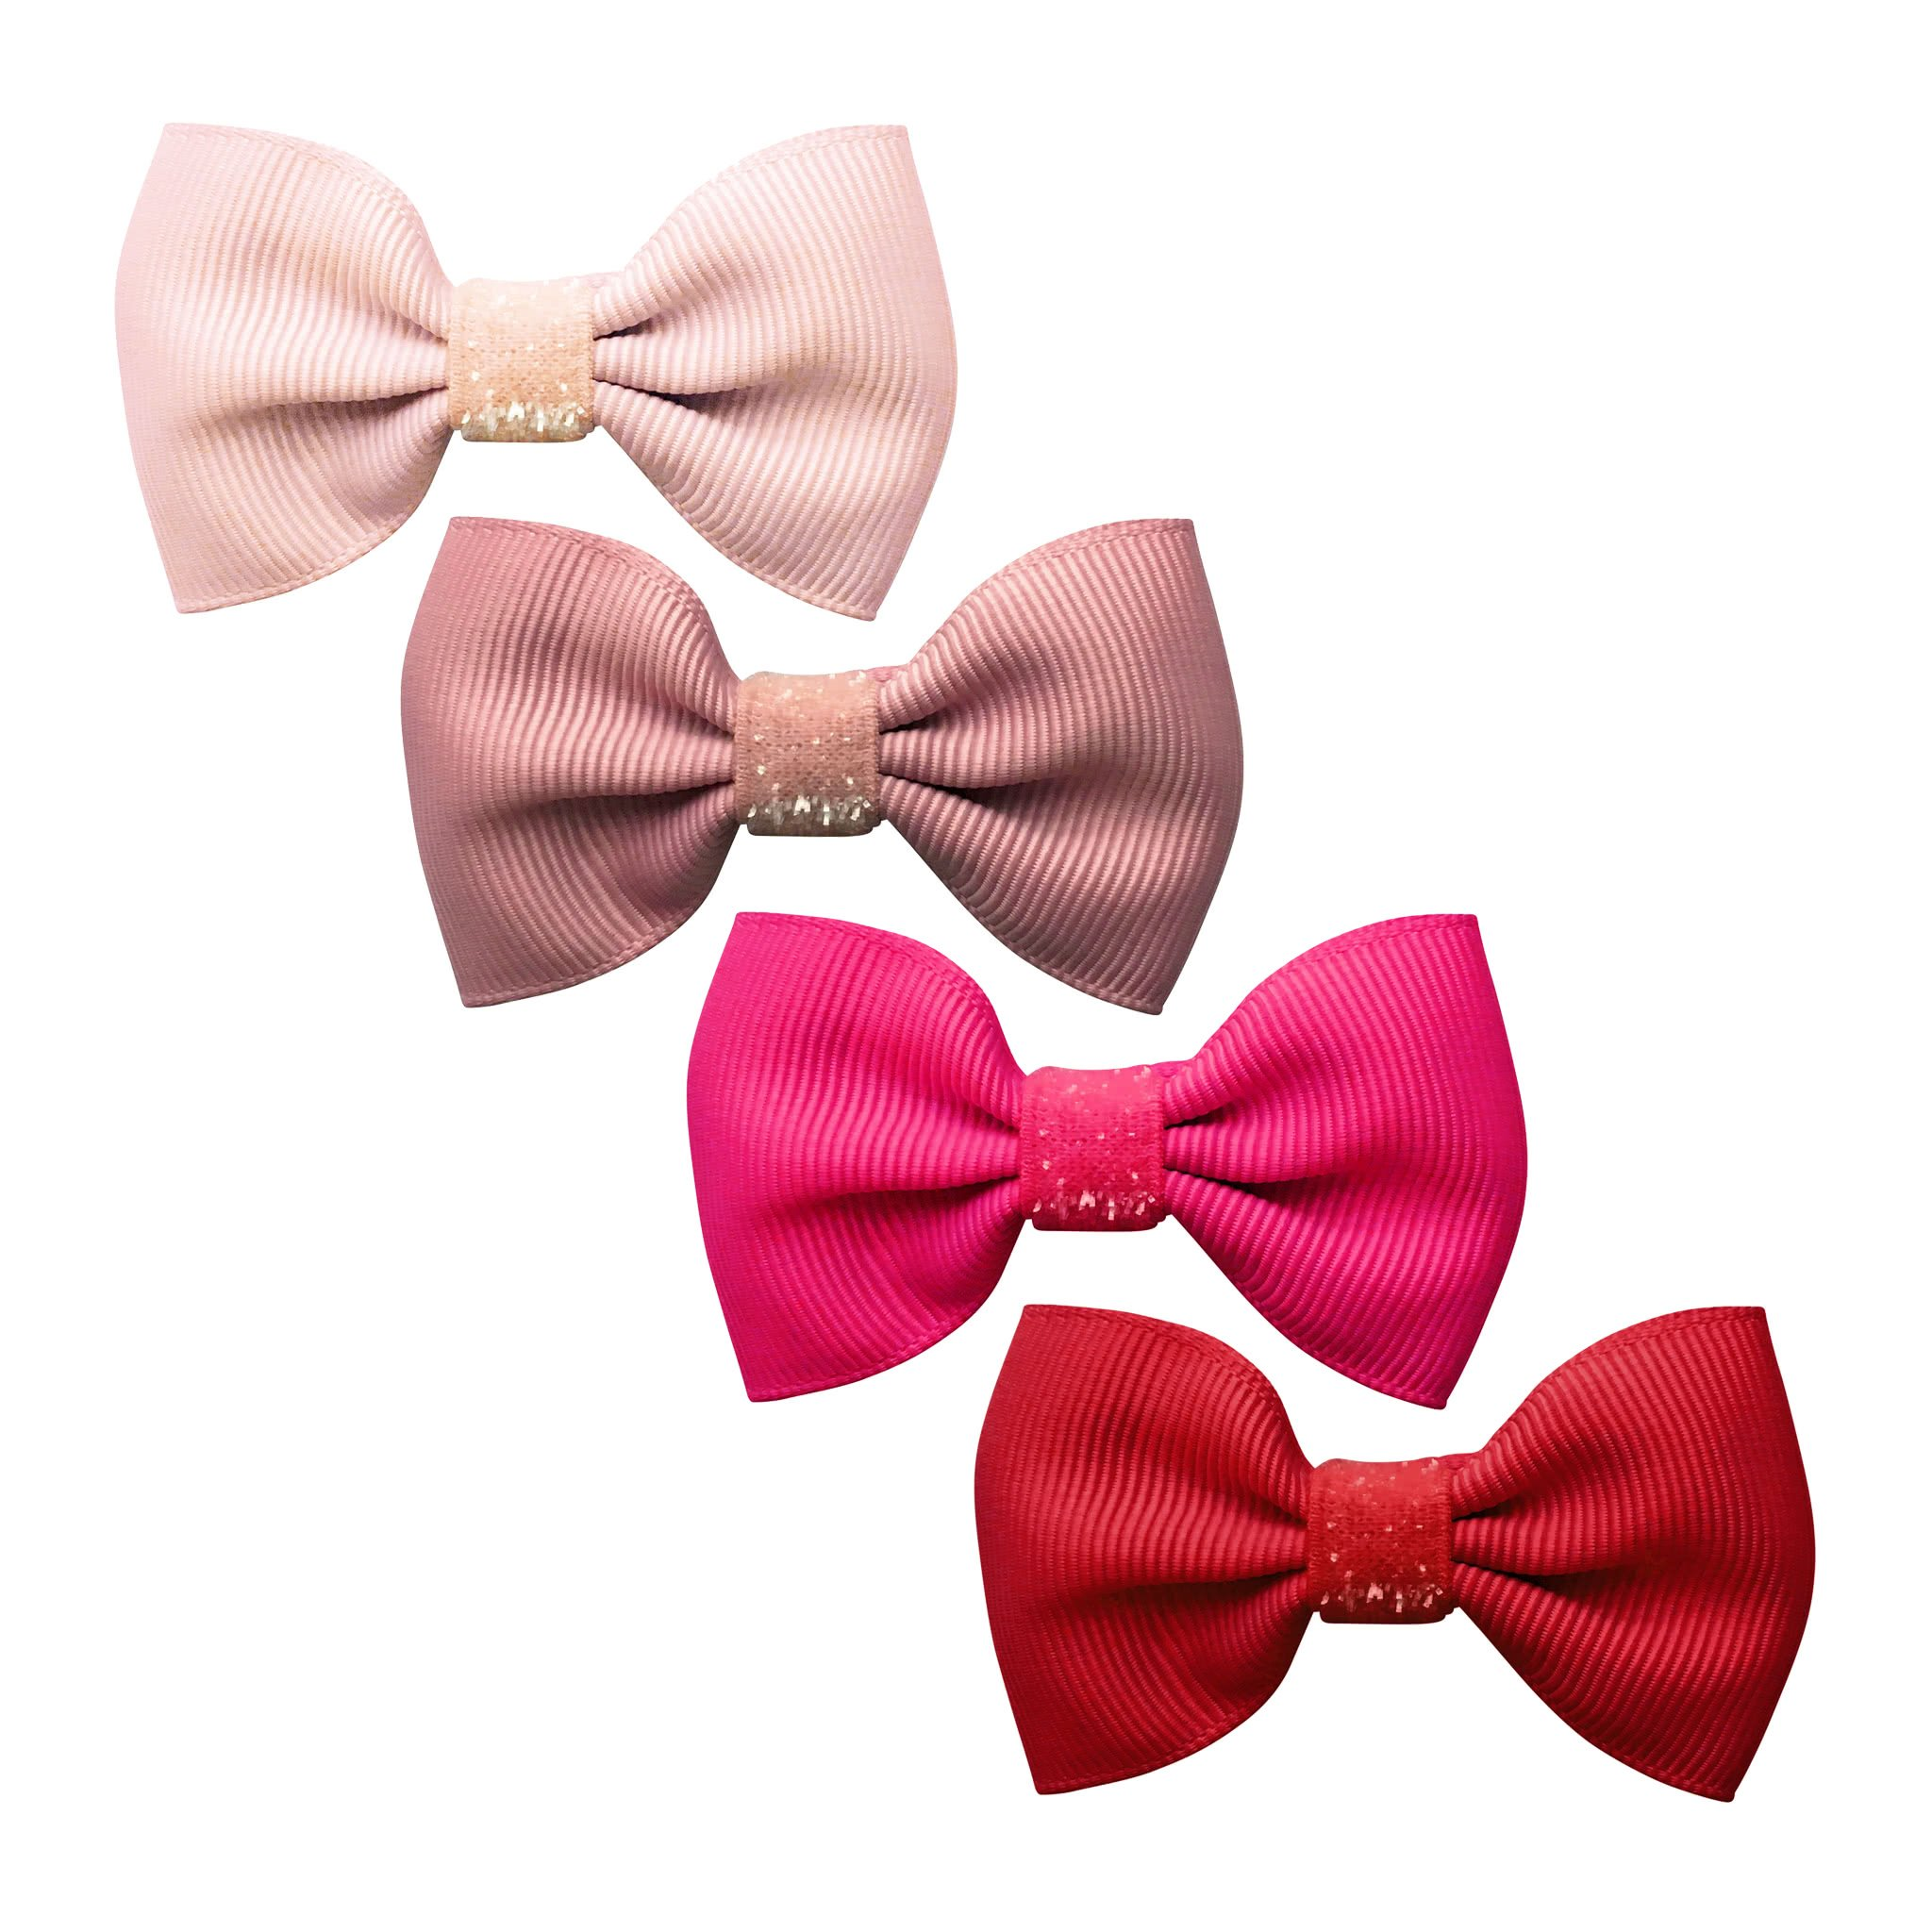 Image of Milledeux® Gift set - 4 Small bowtie bows - Colored Glitter - A130